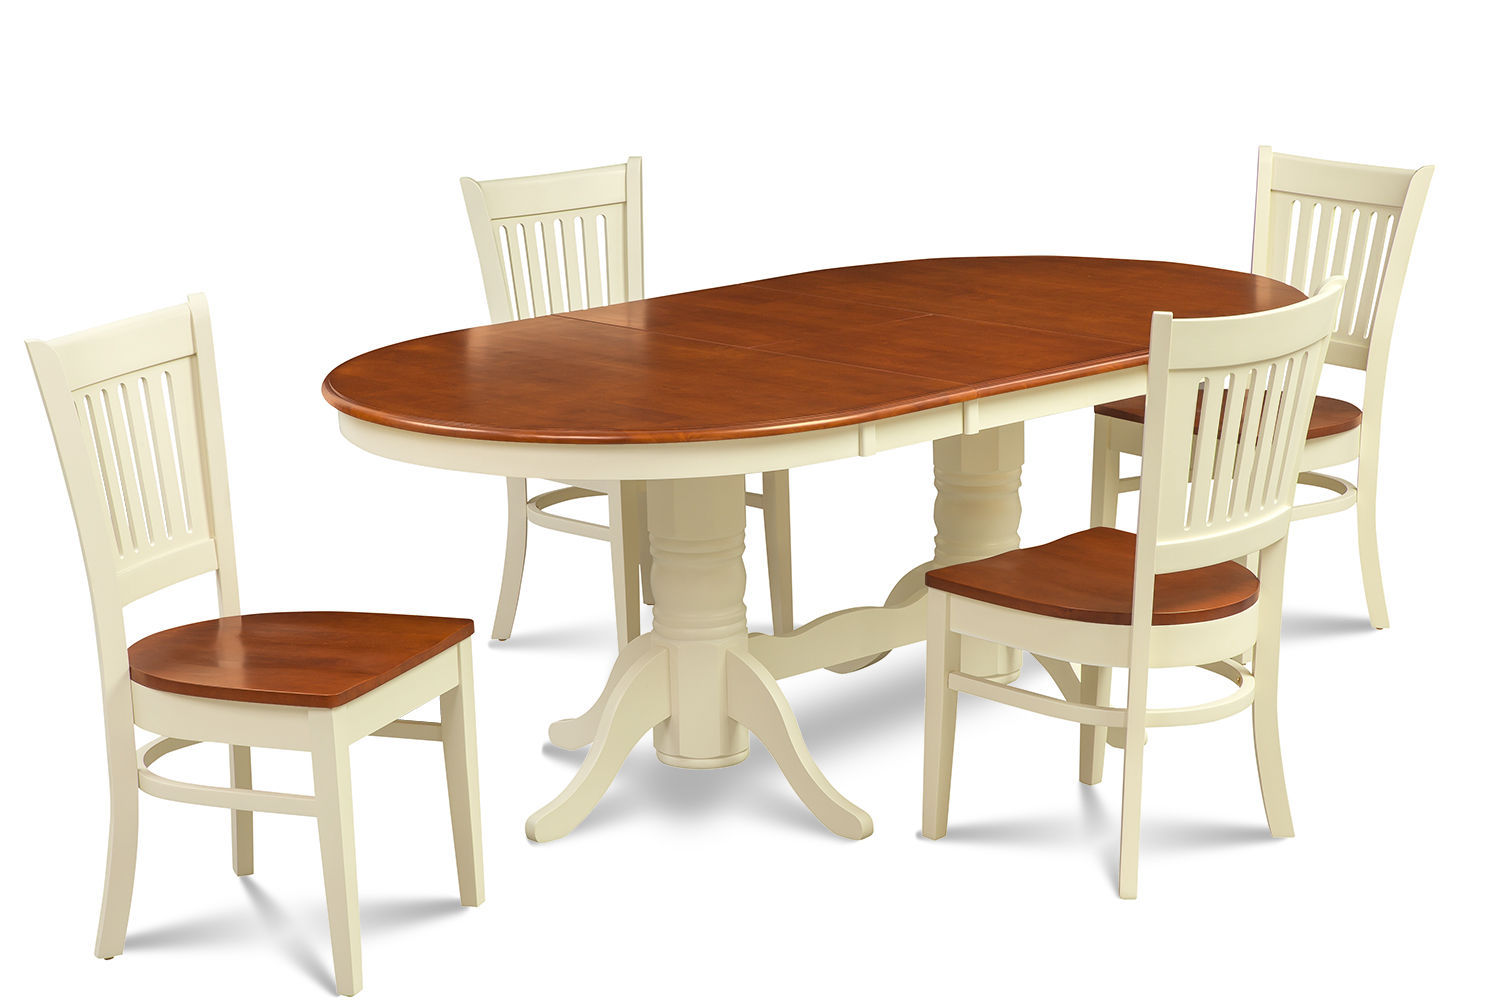 5 PIECE OVAL DINING ROOM TABLE SET w/ 4 WOODEN CHAIR IN BUTTERMILK & CHERRY